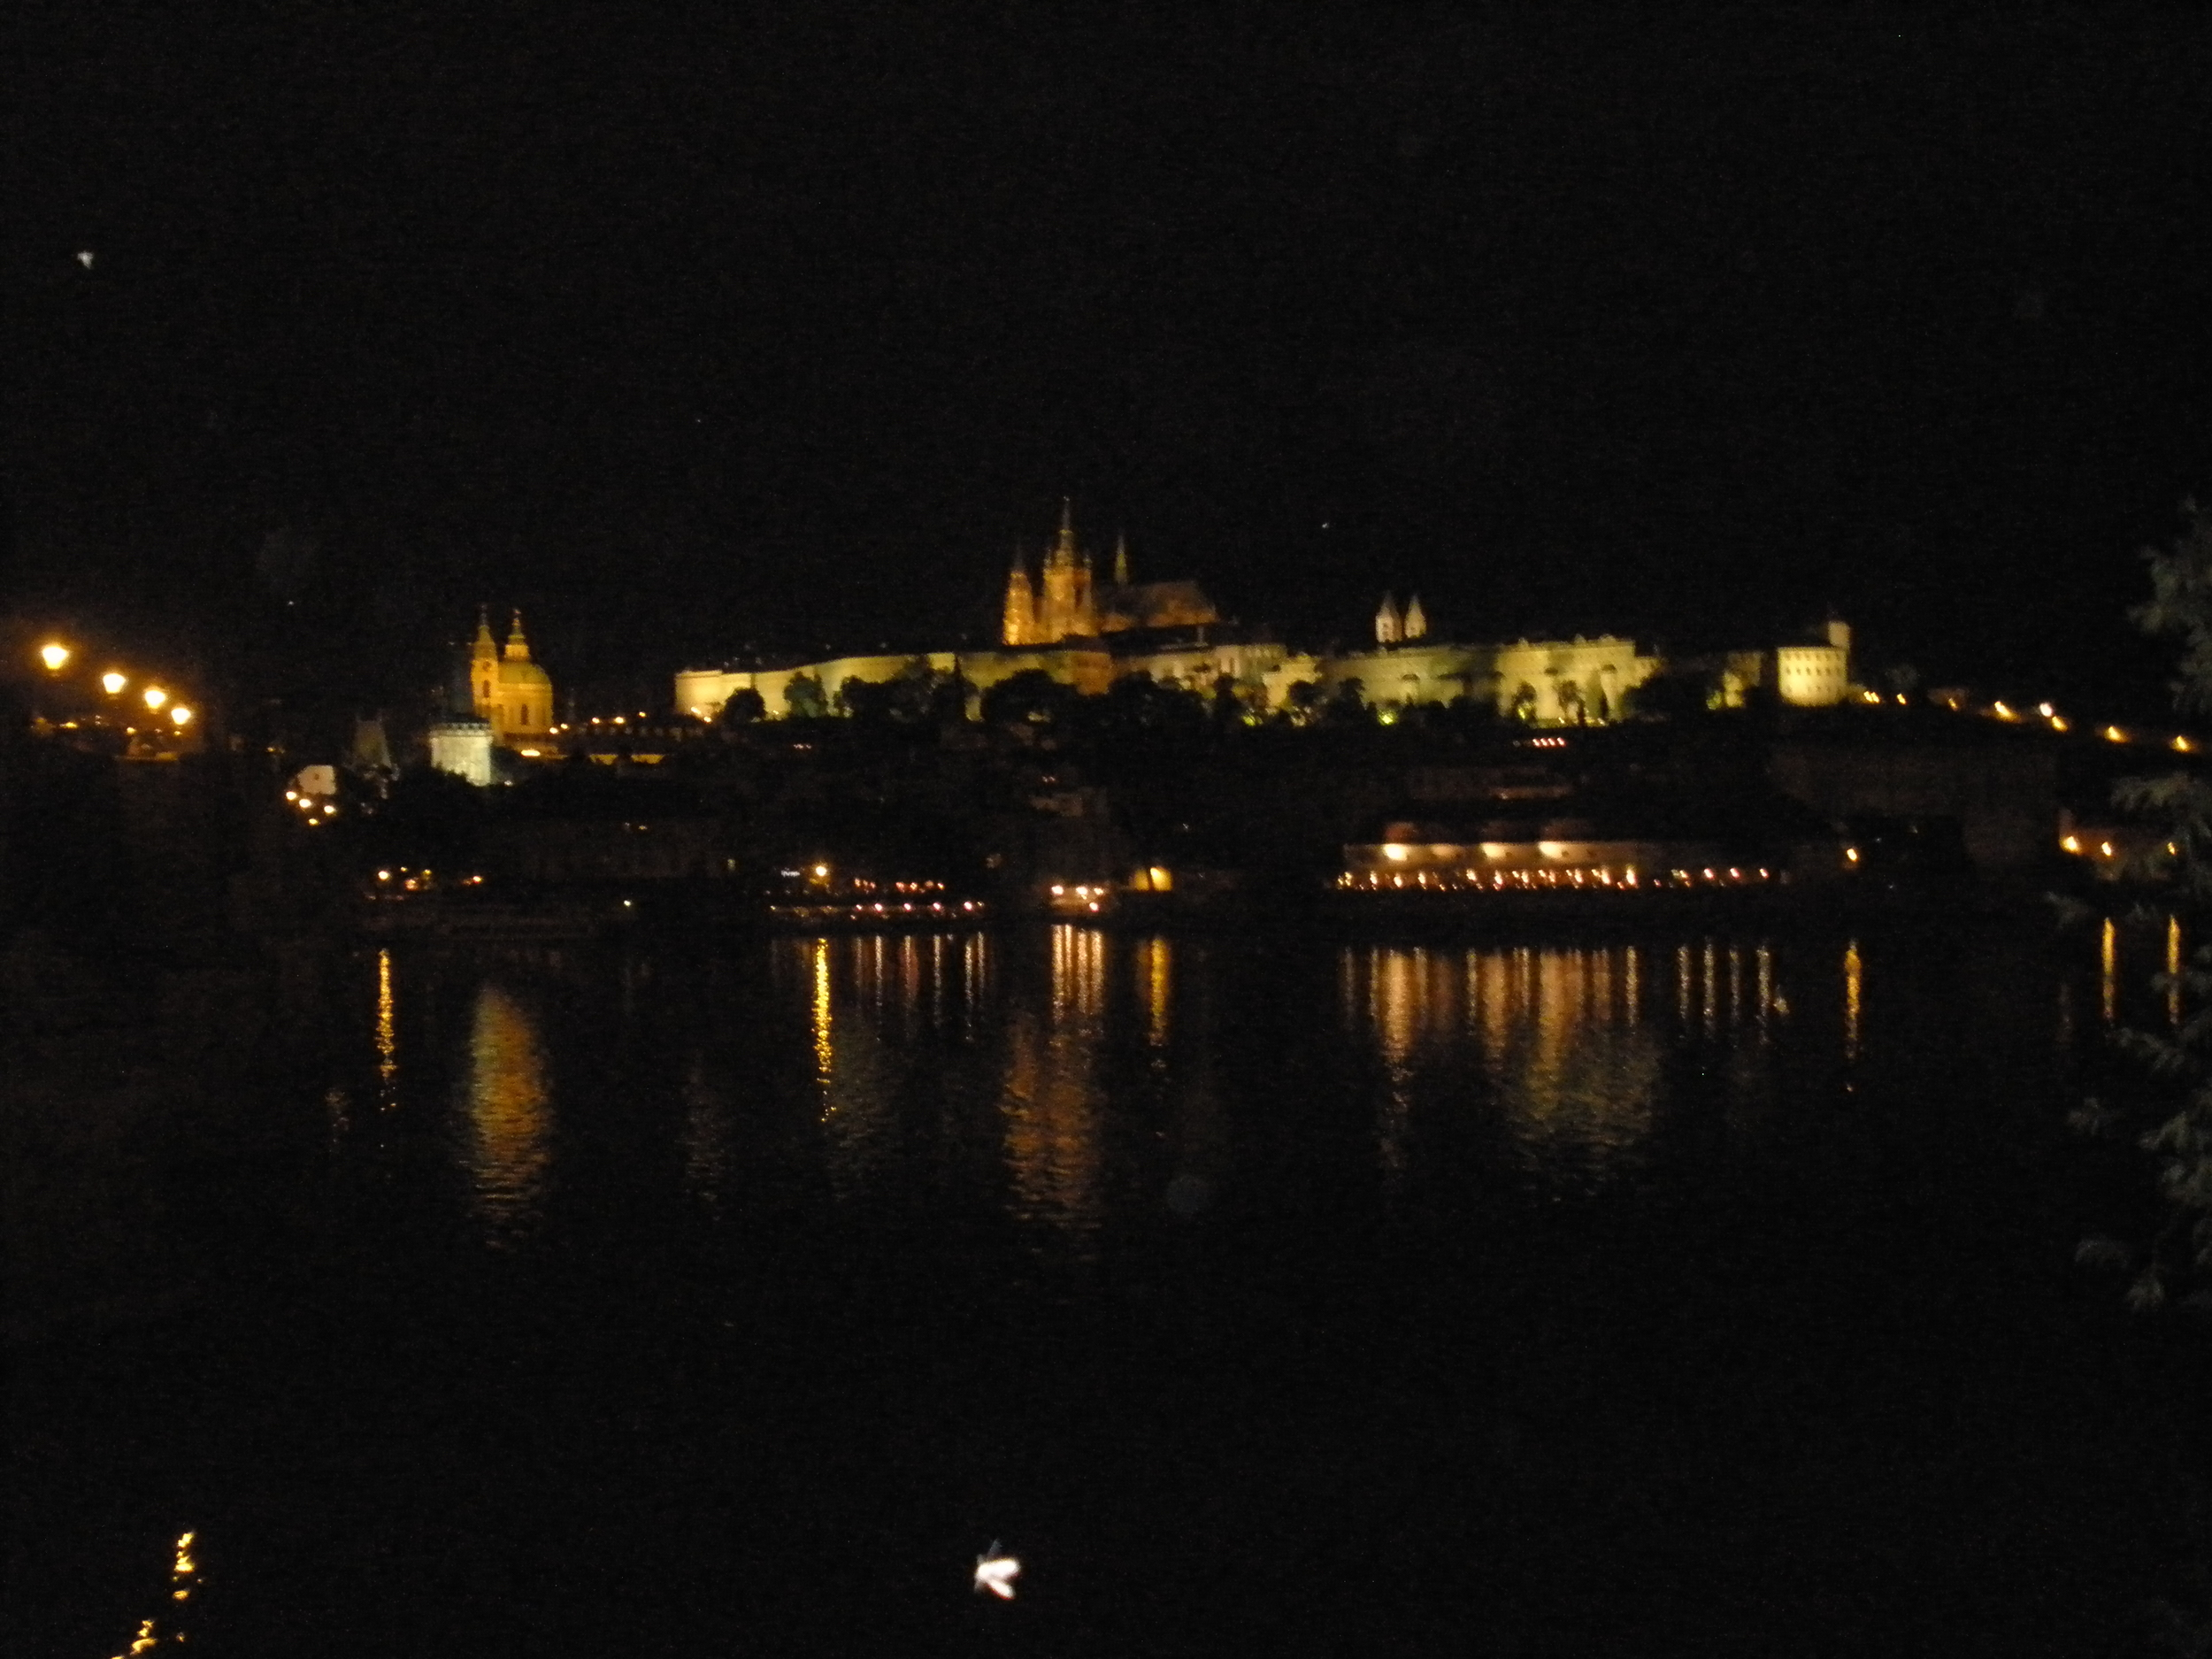 St. Charles Bridge